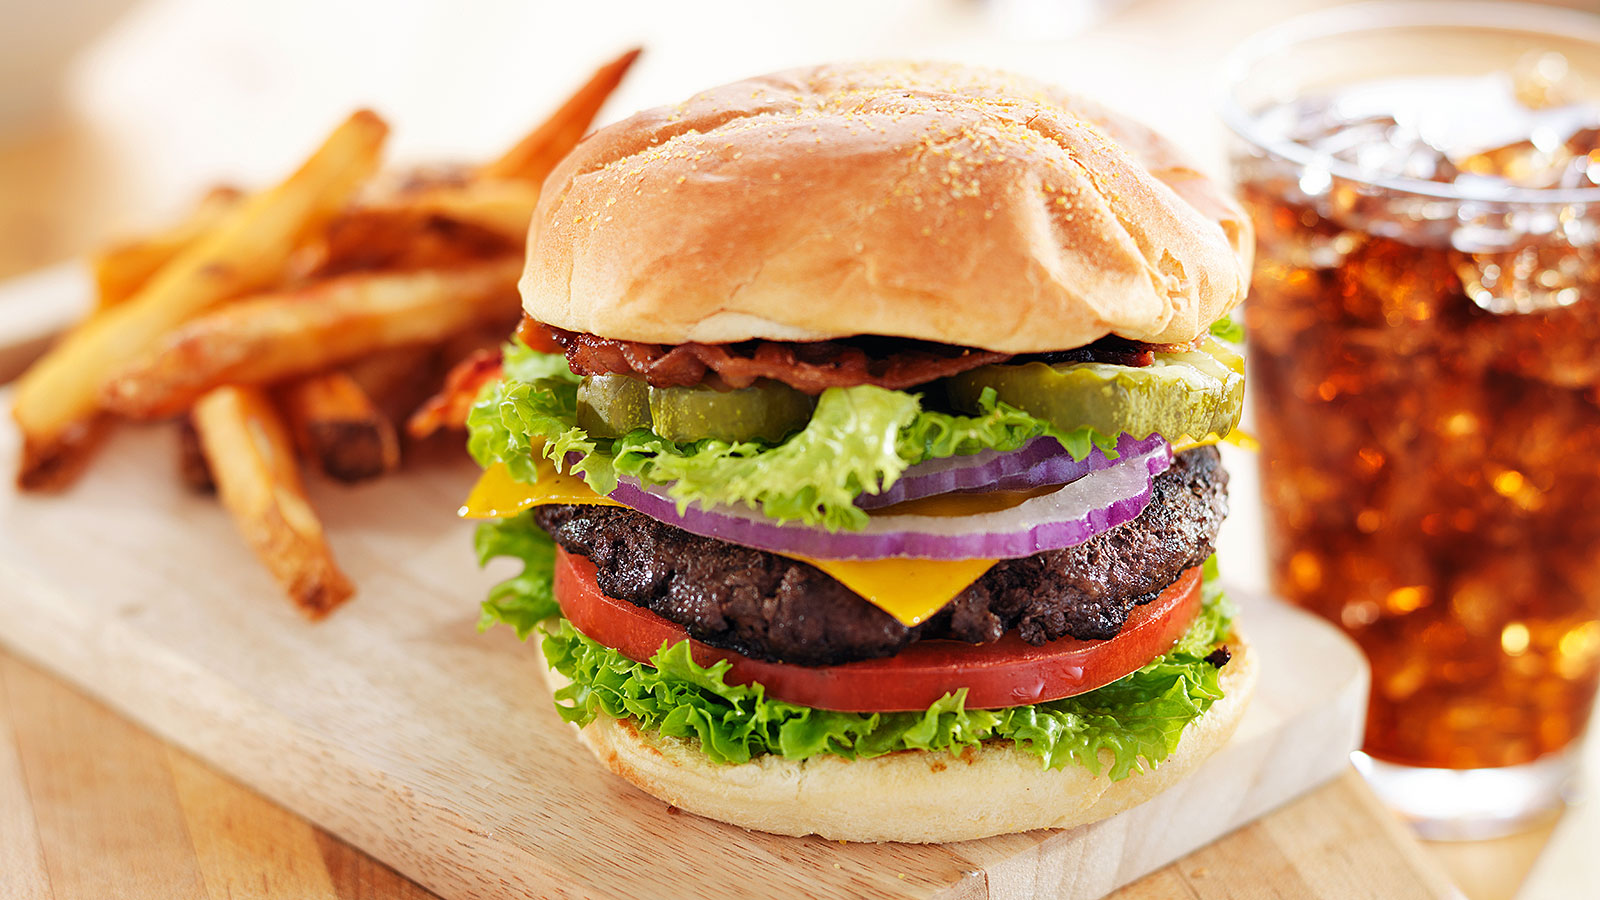 New survey reveals the most common reason Americans purchase junk food